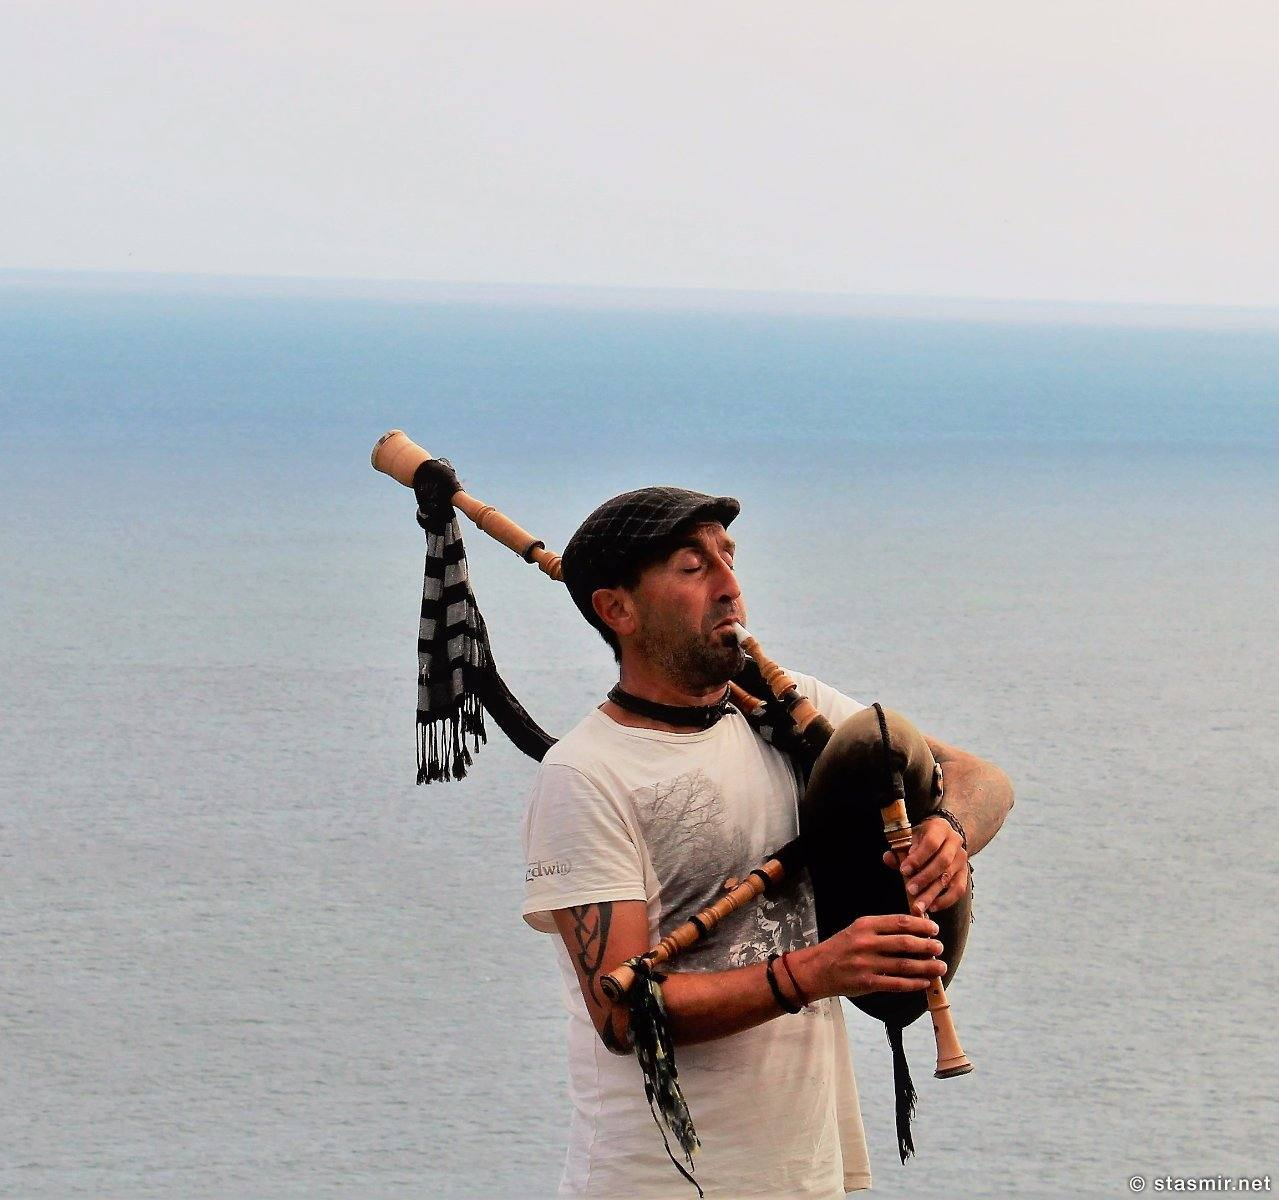 celtic piper in Galicia, Spain, Волынщик-кельт в Галисии, Испания, фото Стасмир, photo Stasmir